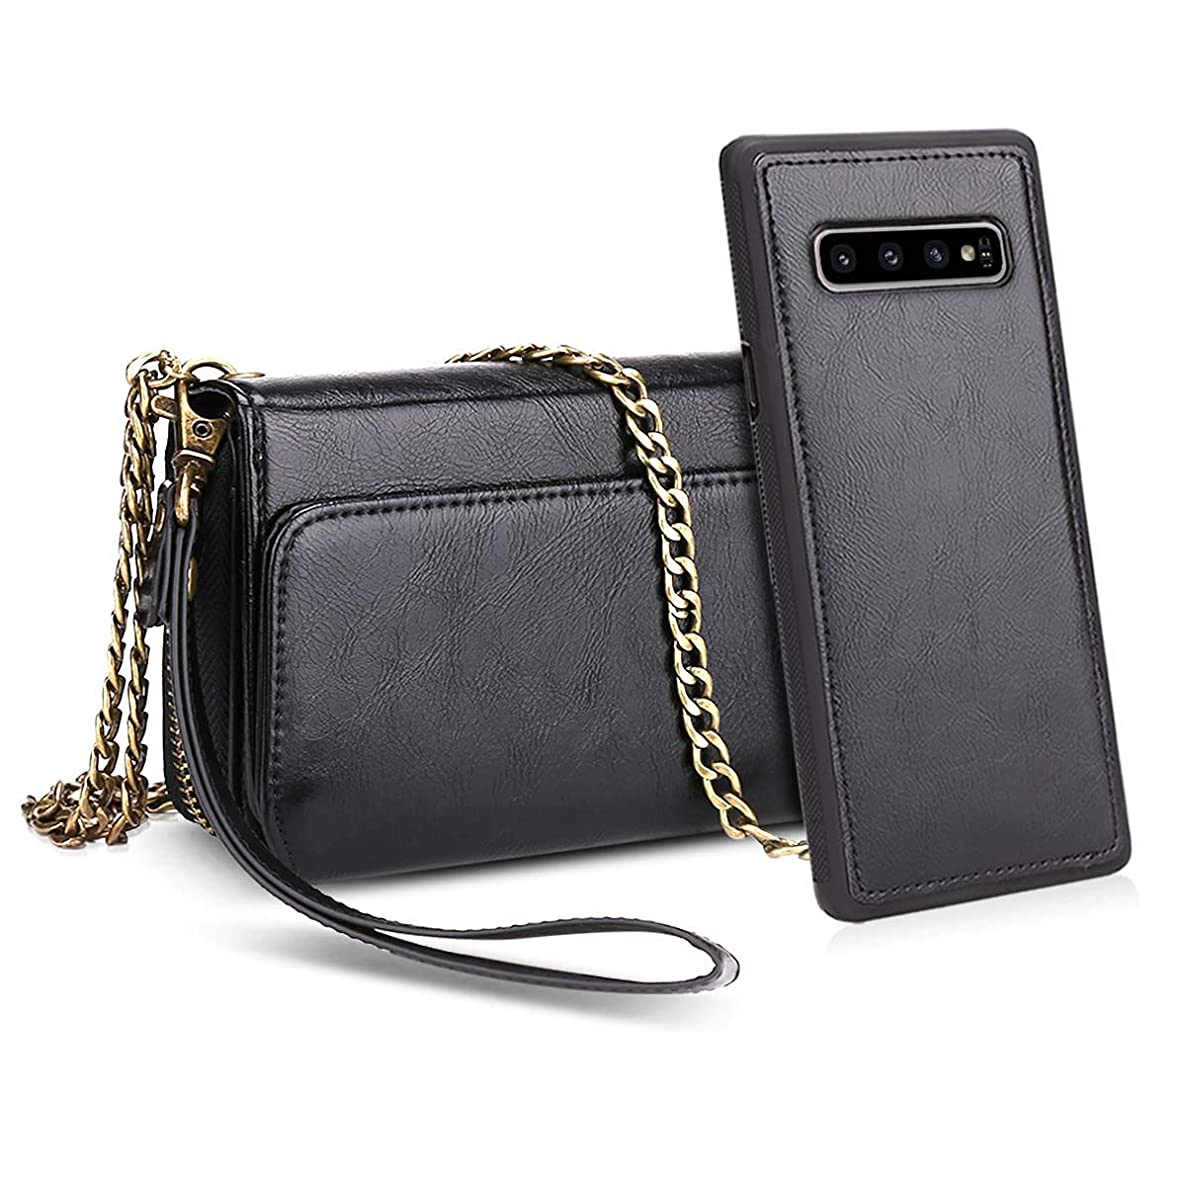 Petocase Compatible Galaxy S10 Wallet Case, Multi-Functional PU Leather Wrist Chain Crossbody Strap Clutch Detachable Magnetic Card Slots Cash Purse Protection Cover for Samsung Galaxy S10 Black